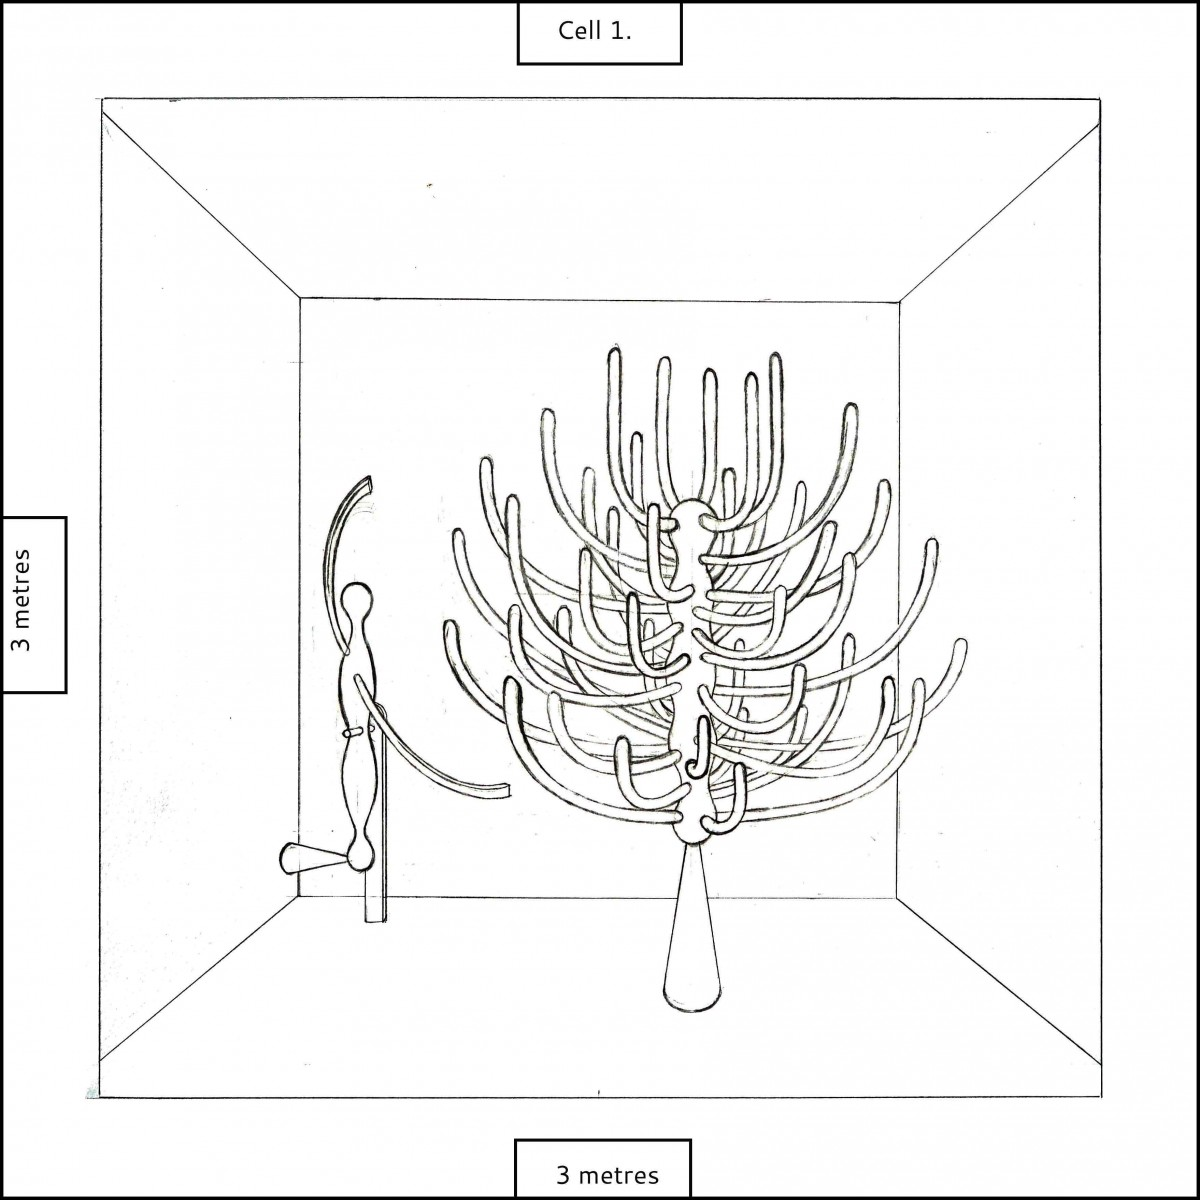 Cell 1. Design showing two sculptures in one space